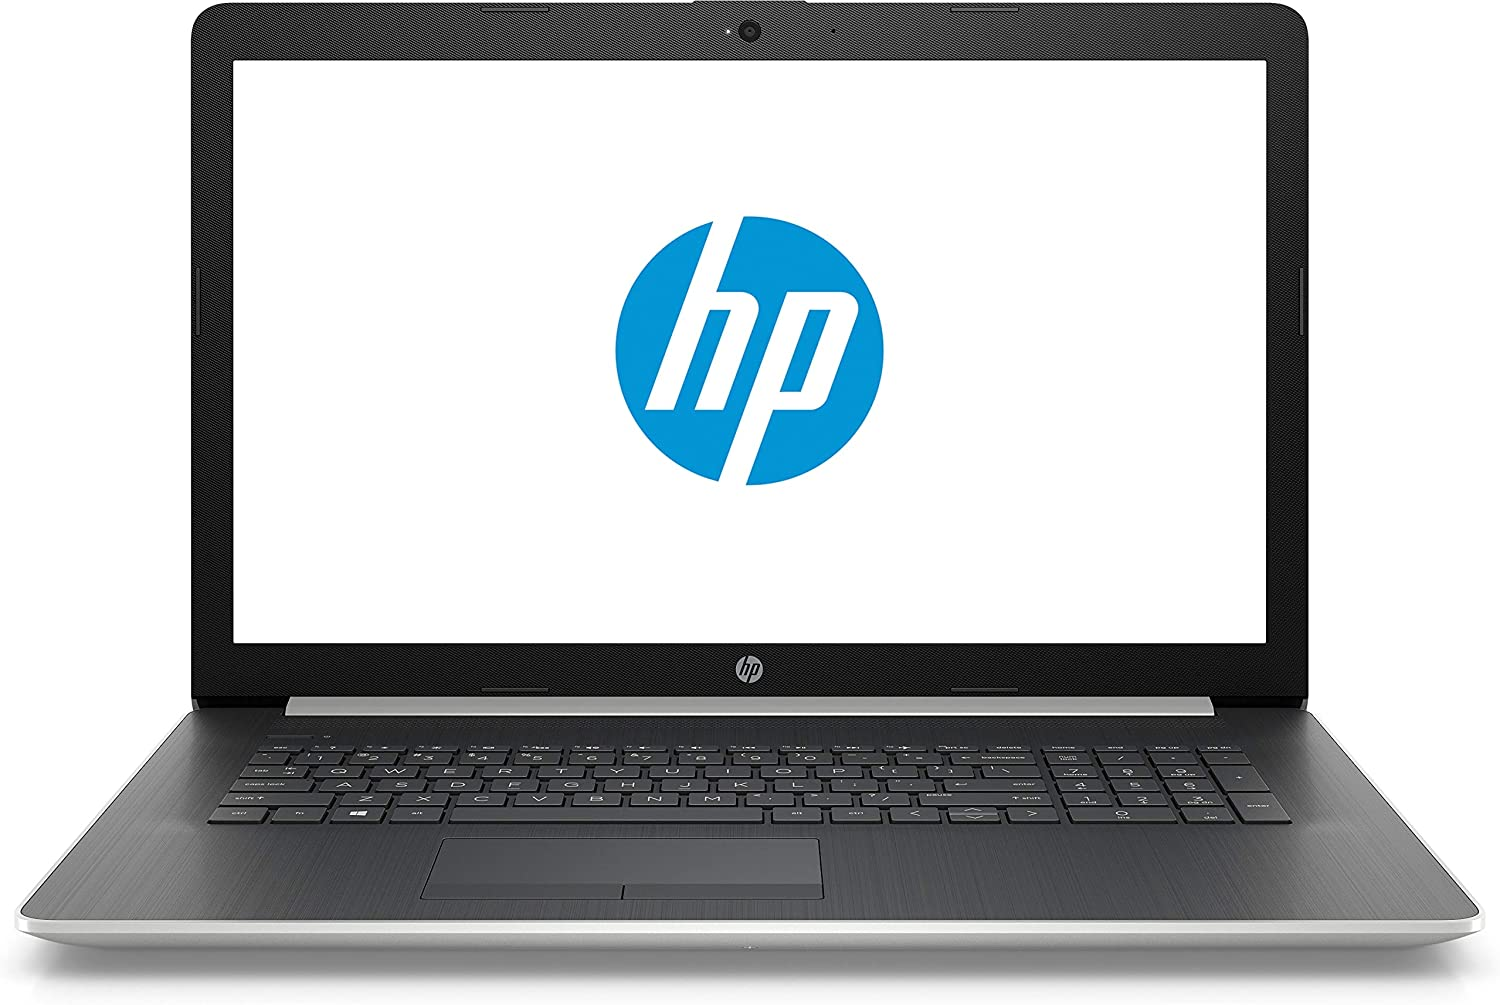 "2018 Newest HP 17.3"" HD+ Notebook, Intel Core i5-8250U Processor, 24GB Memory: 16GB Intel Optane + 8GB RAM, 2TB Hard Drive, Optical Drive, HD Webcam, Backlit Keyboard, Windows 10, Natural Silver"